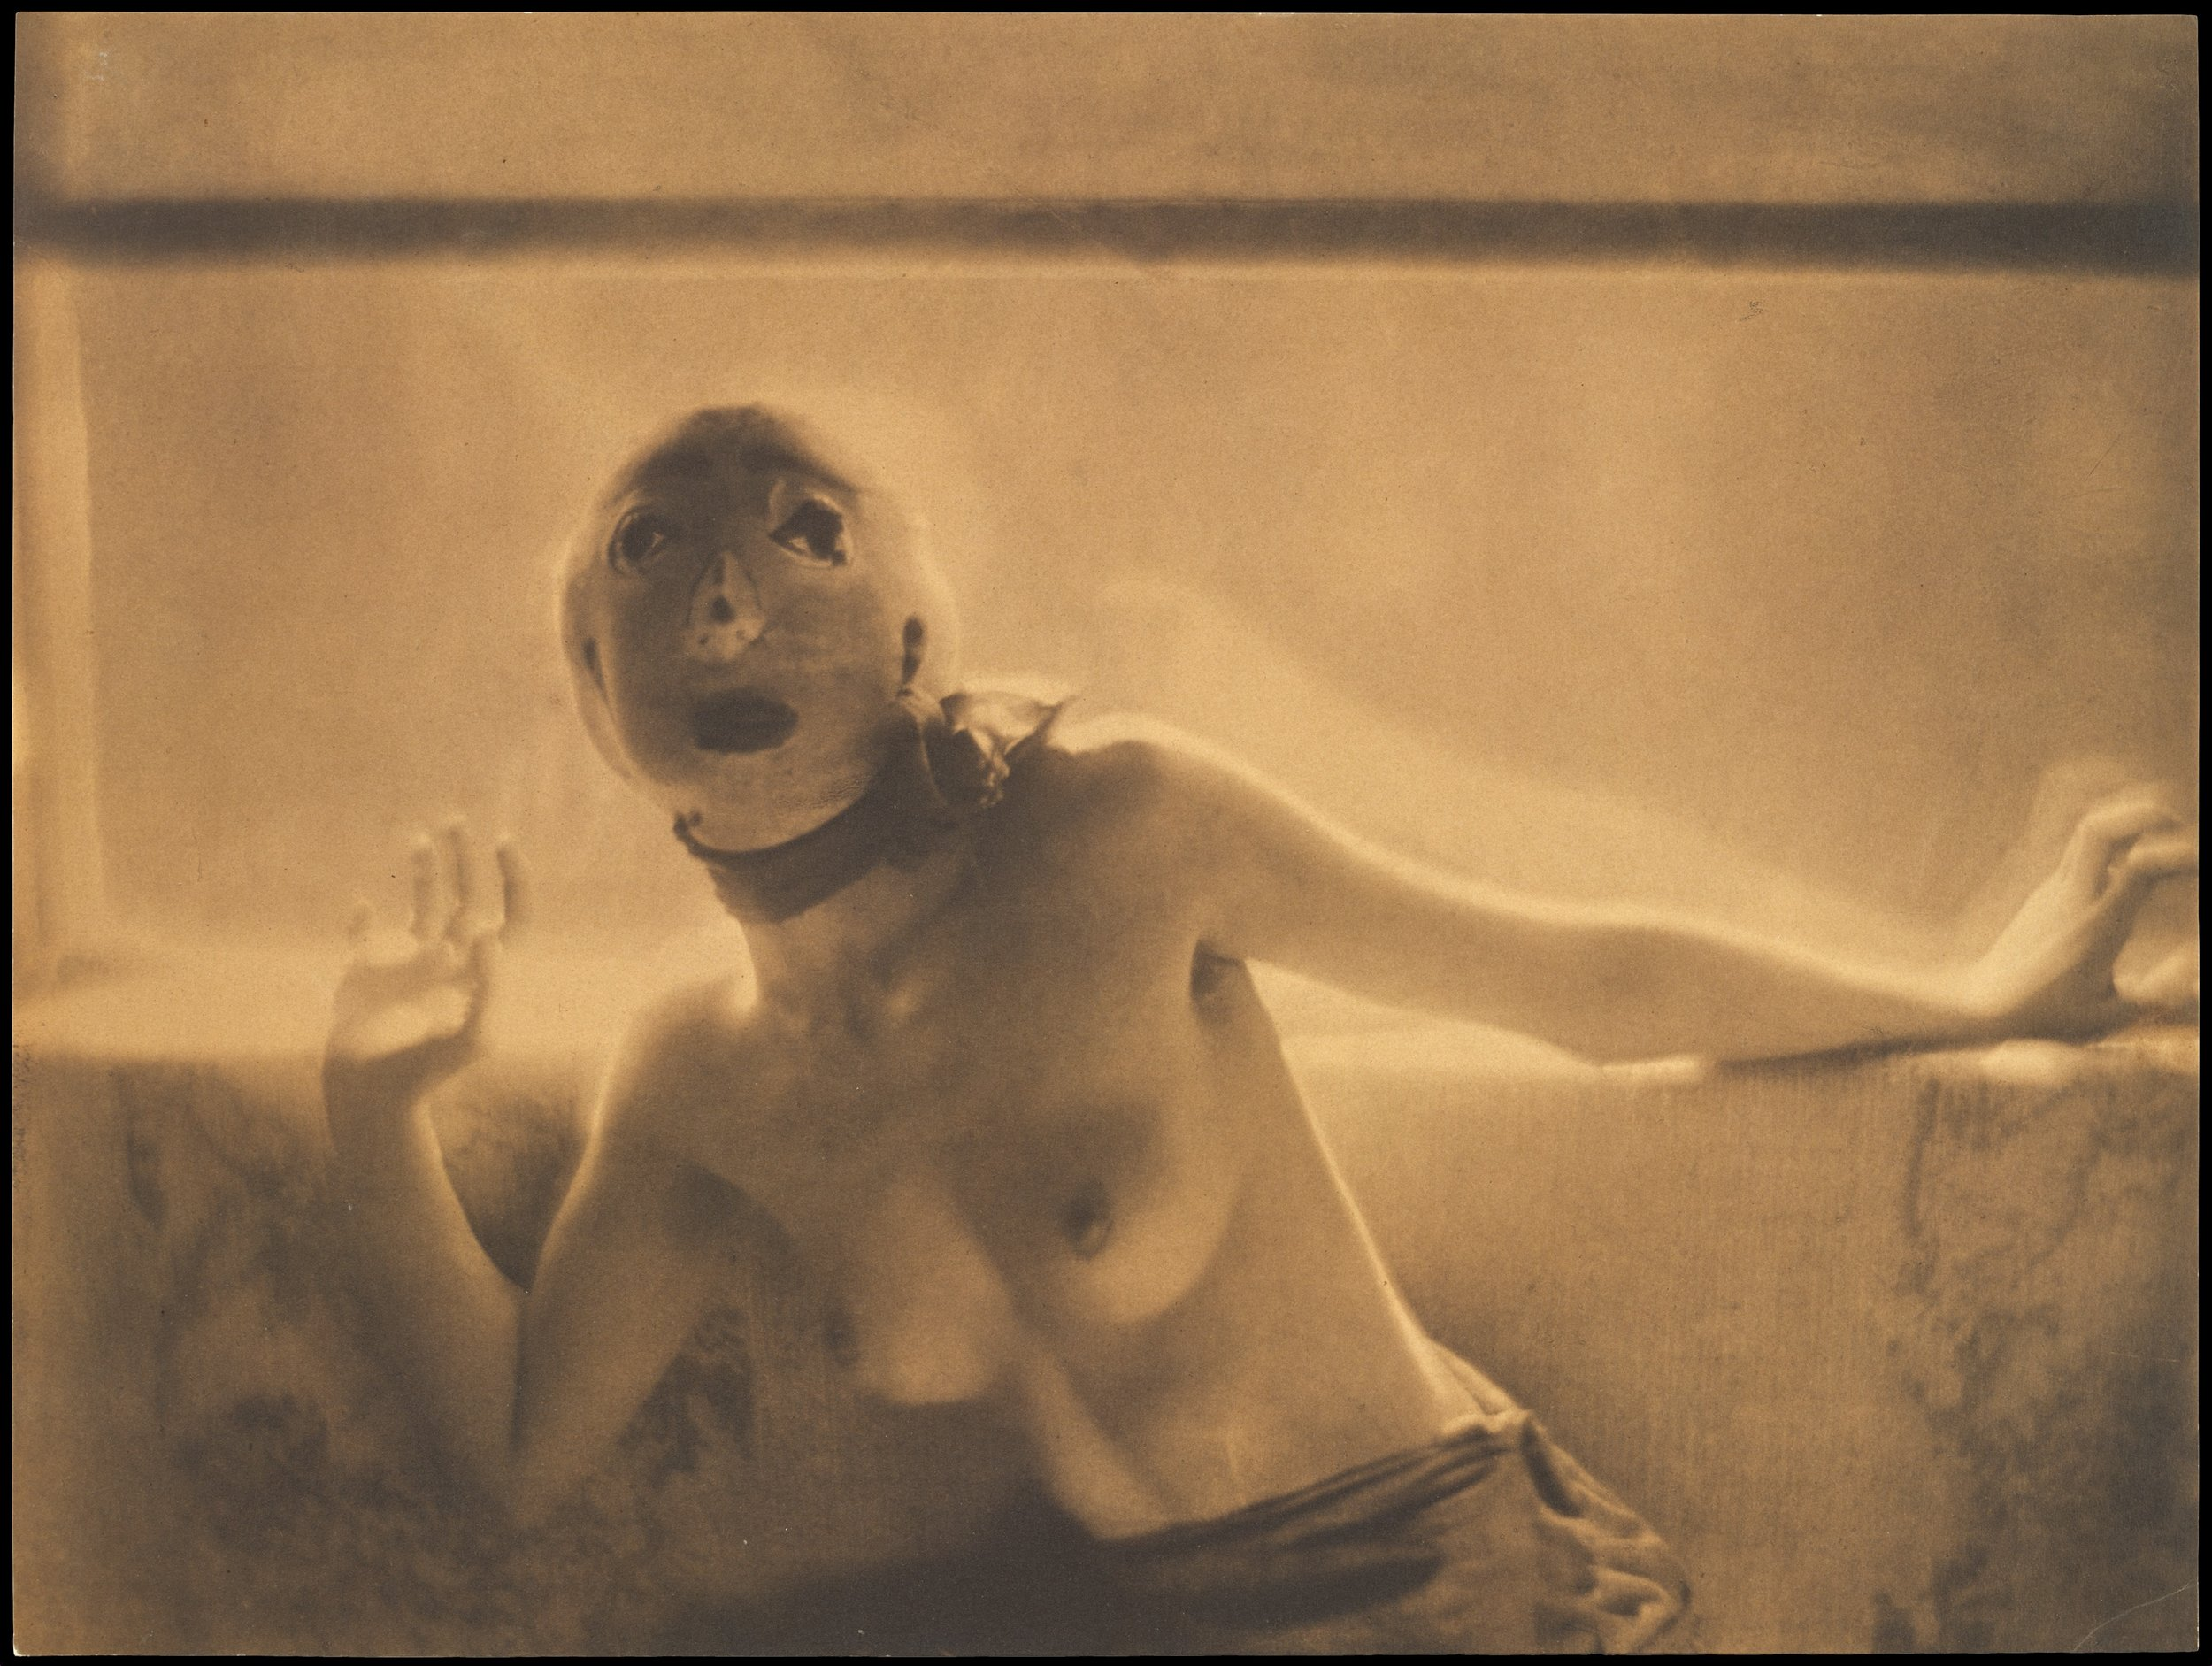 Adolf de Meyer - [Dance Study] - Platinum print - 1912